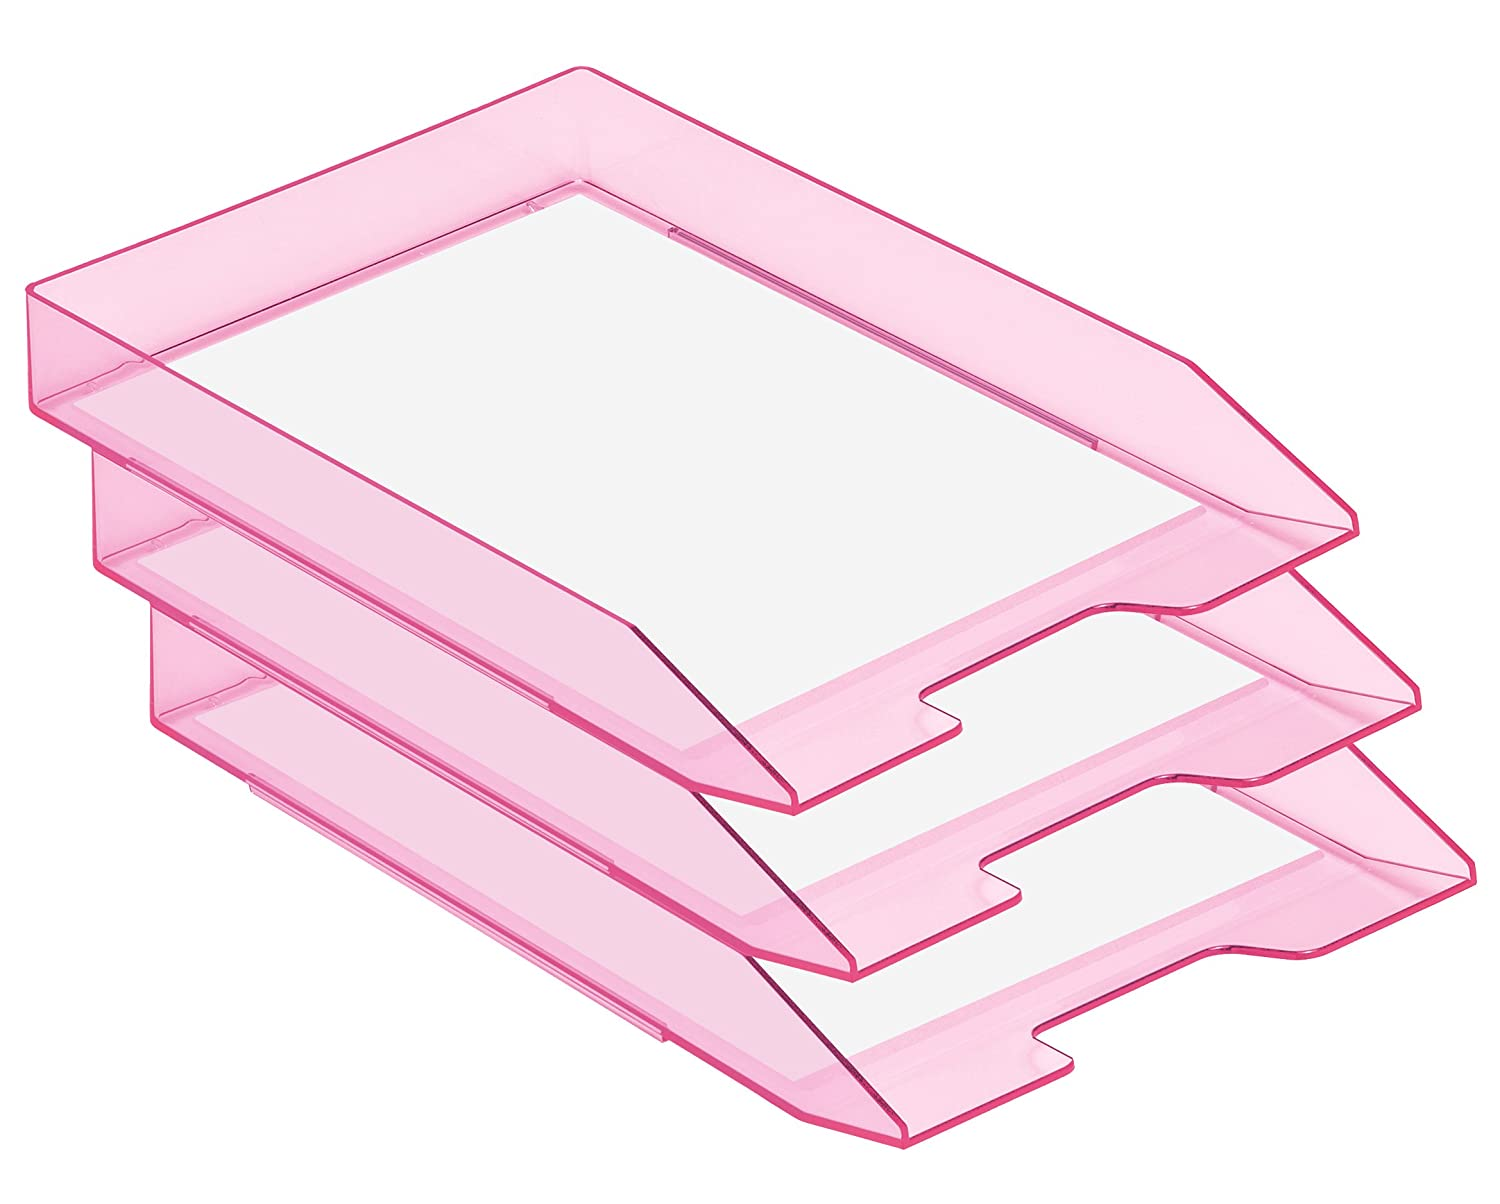 Amazon.com : Acrimet Stackable Letter Tray (Clear Pink Color) (1 ...